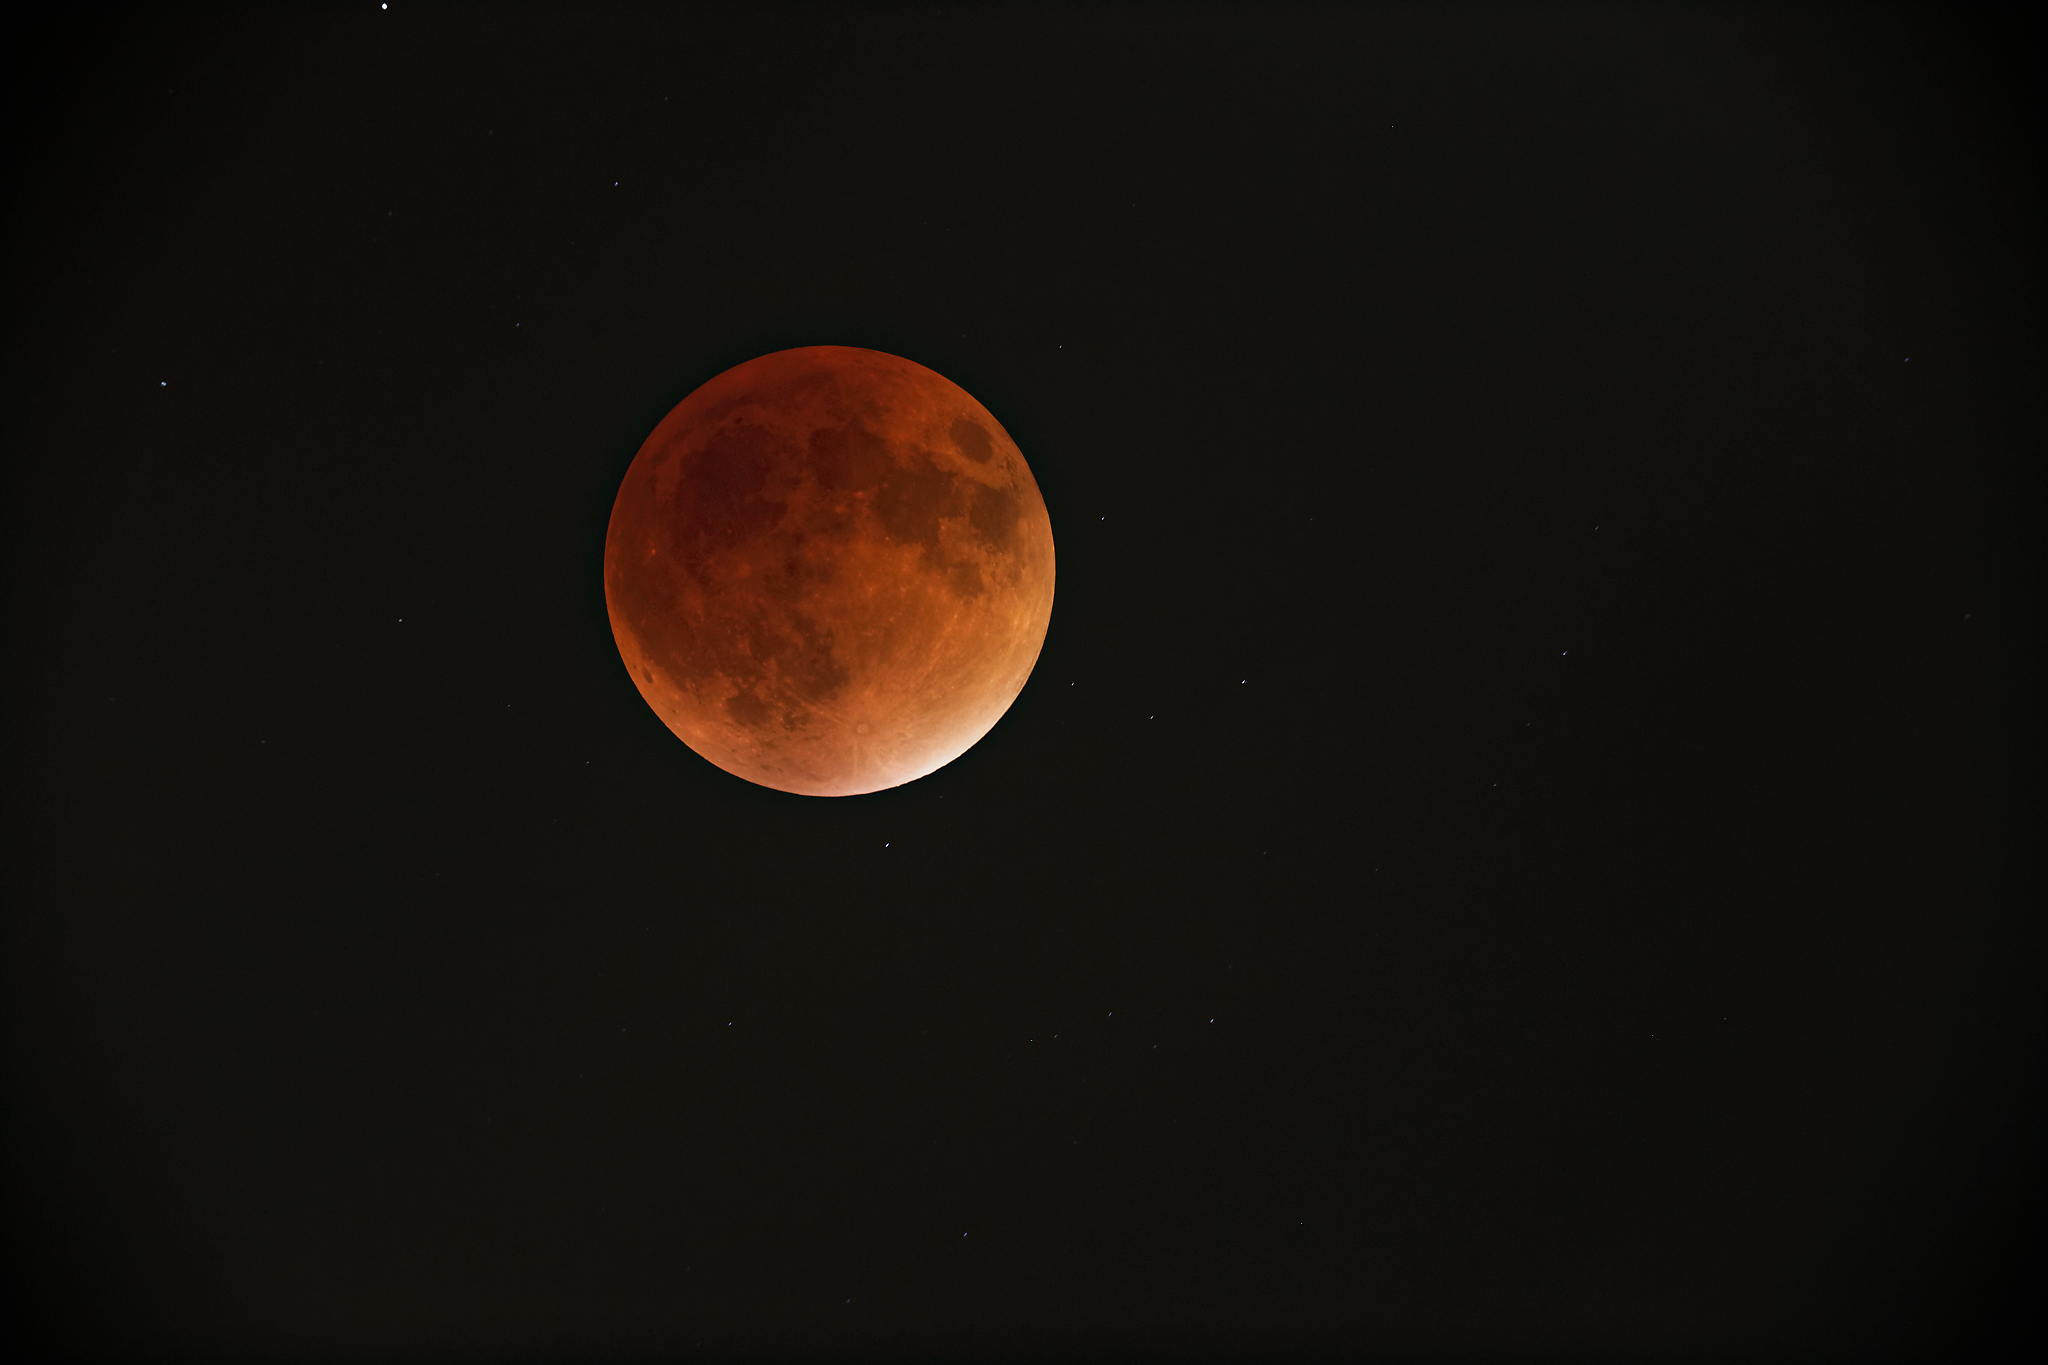 blood moon january 2019 south carolina - photo #5